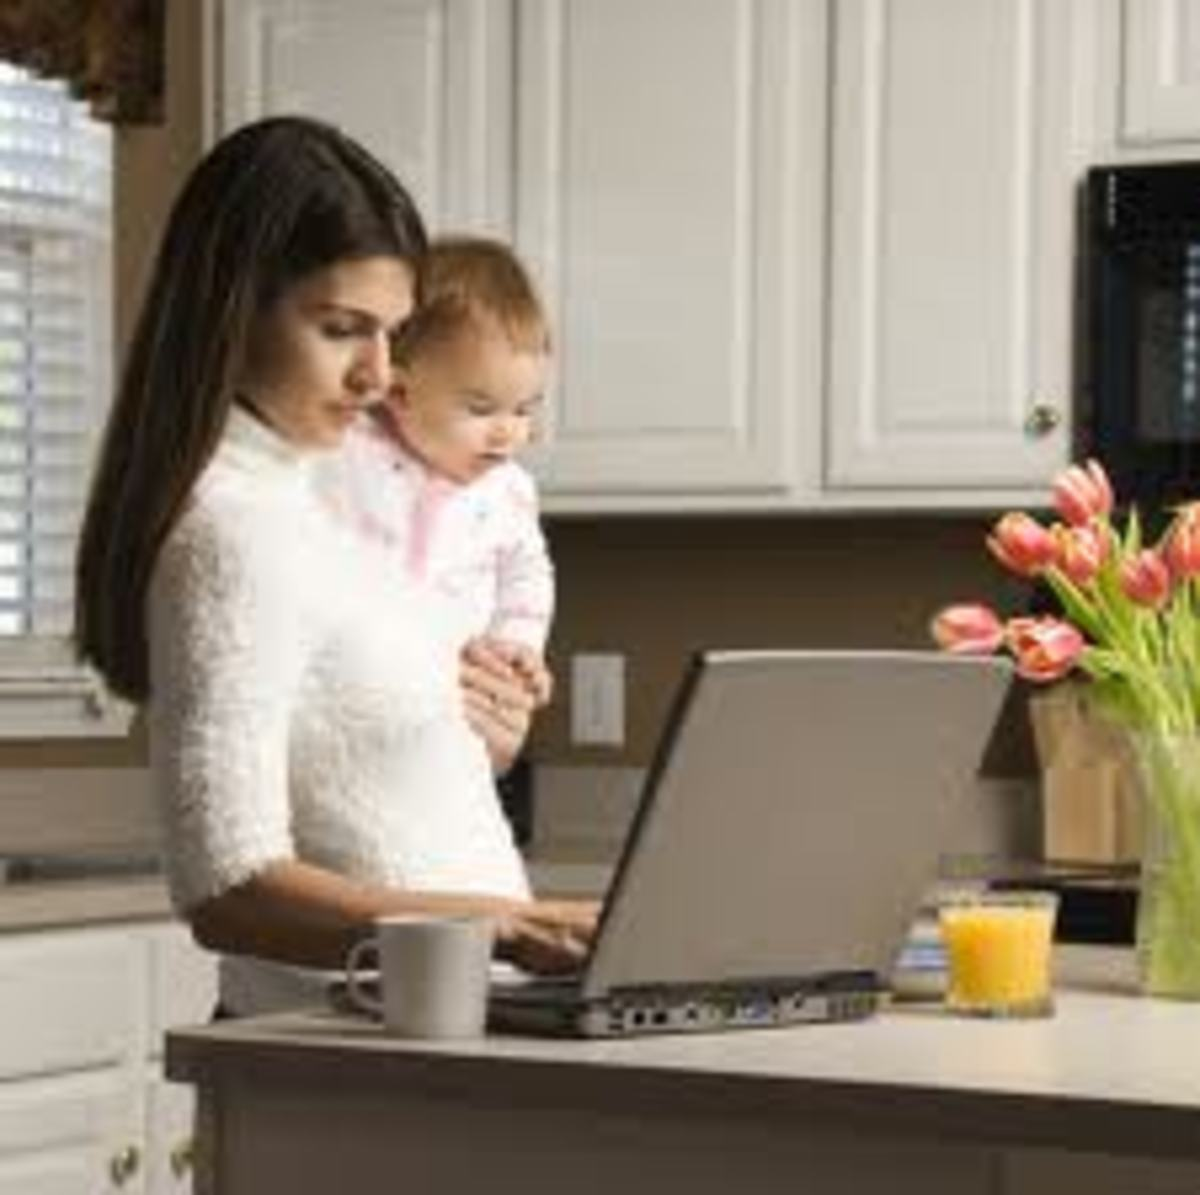 Best tips to find work-from-home jobs and avoid scams.